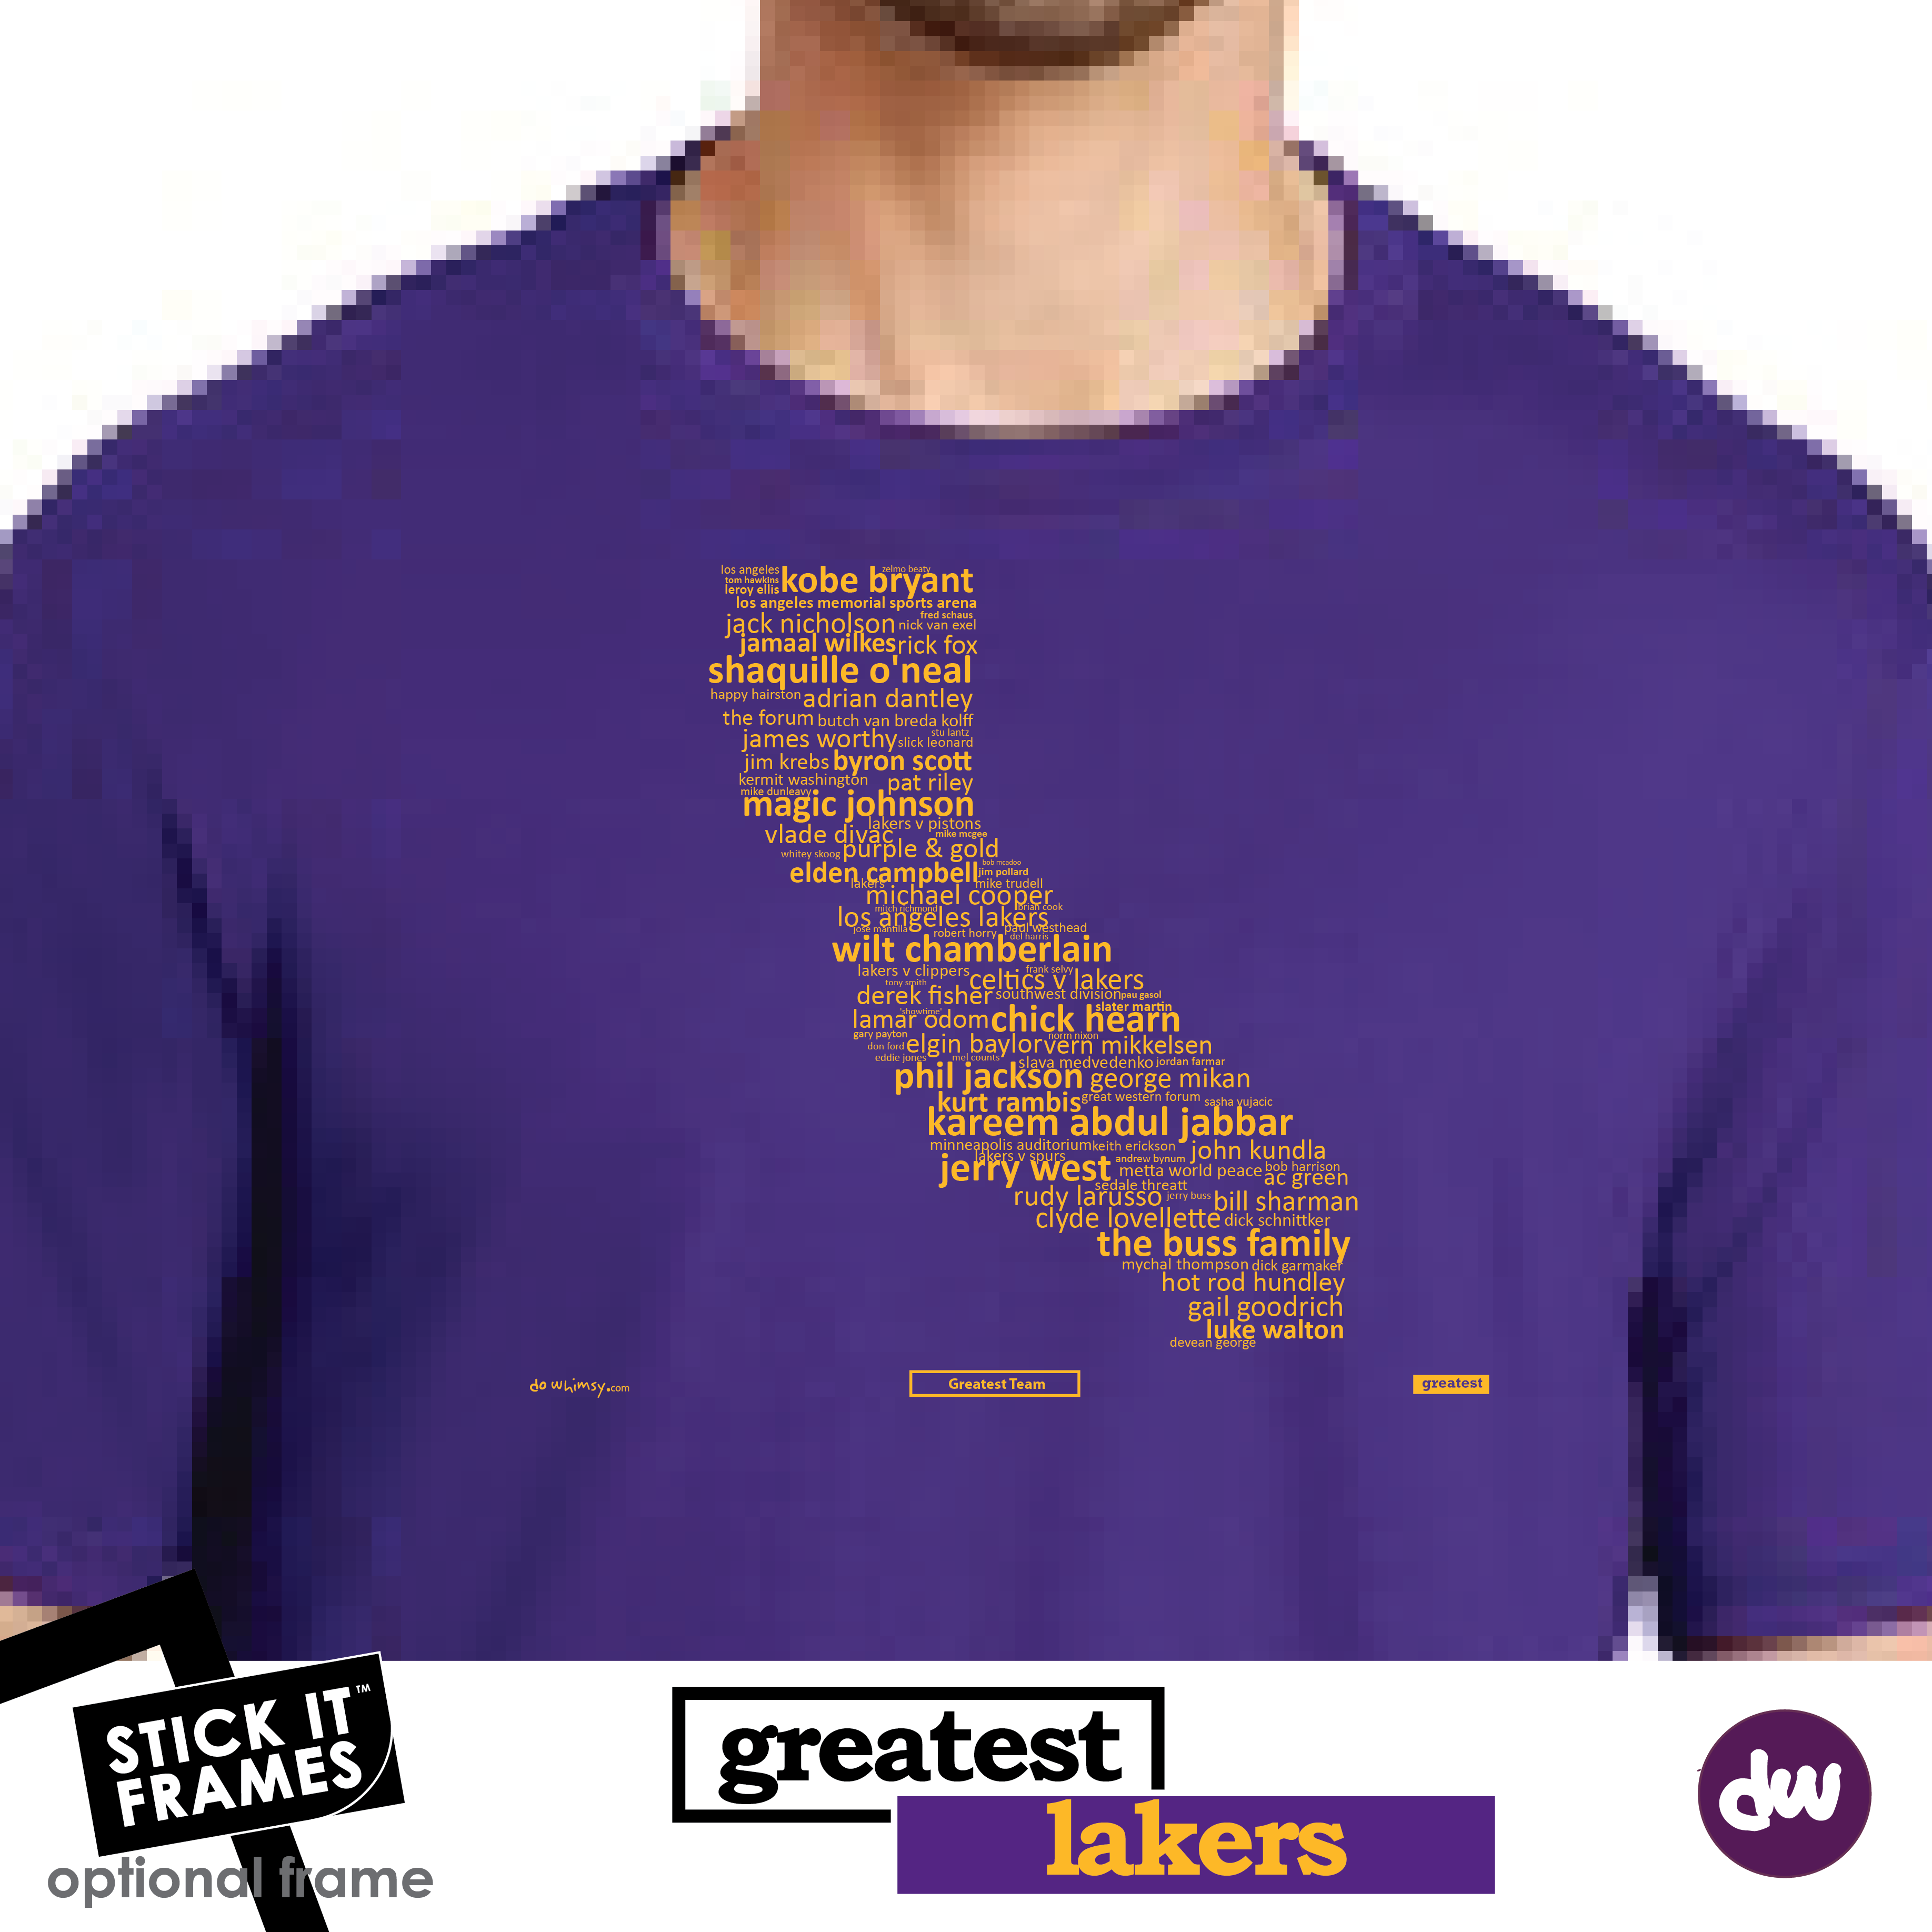 Greatest California (Lakers) - All Products (Shirt, Art, Frames (R))